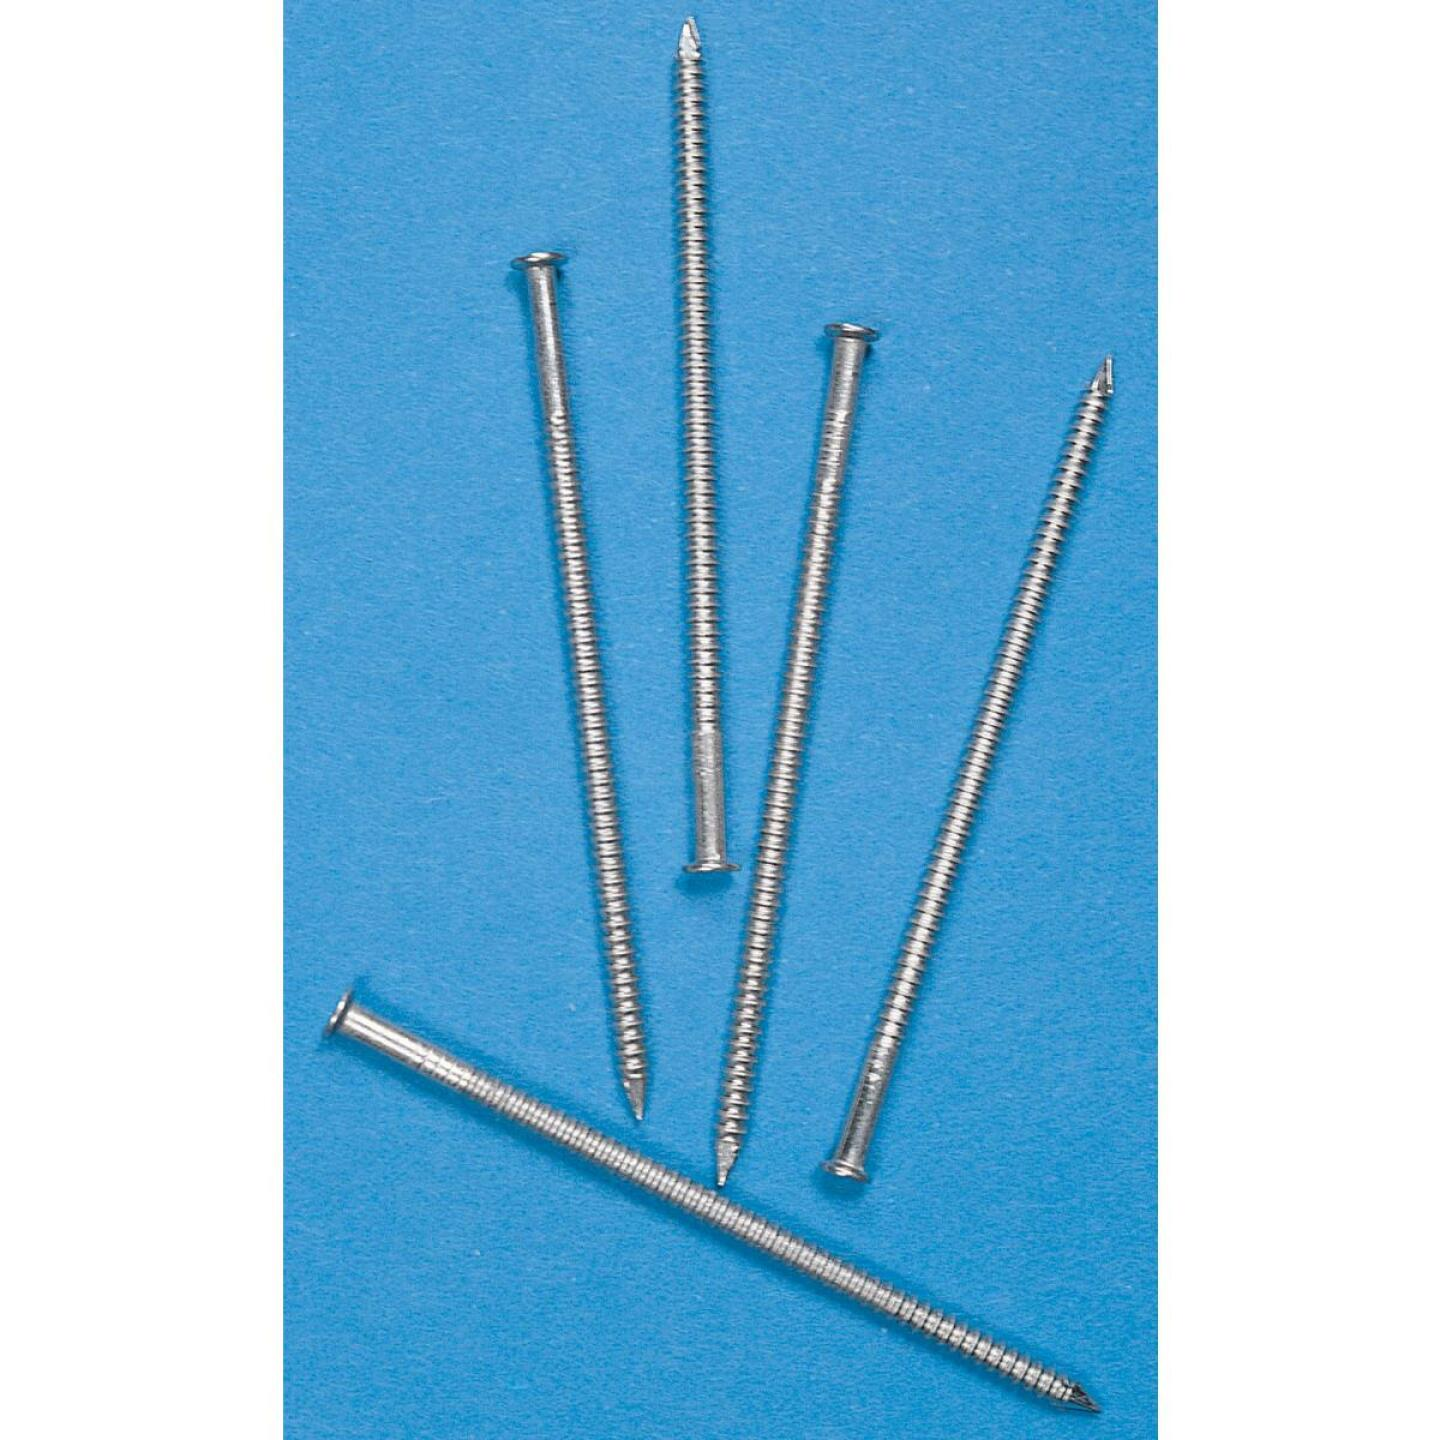 Simpson Strong-Tie 5d x 1-3/4 In. Stainless Steel Flat Checkered Siding Nails (1770 Ct., 5 Lb.) Image 2